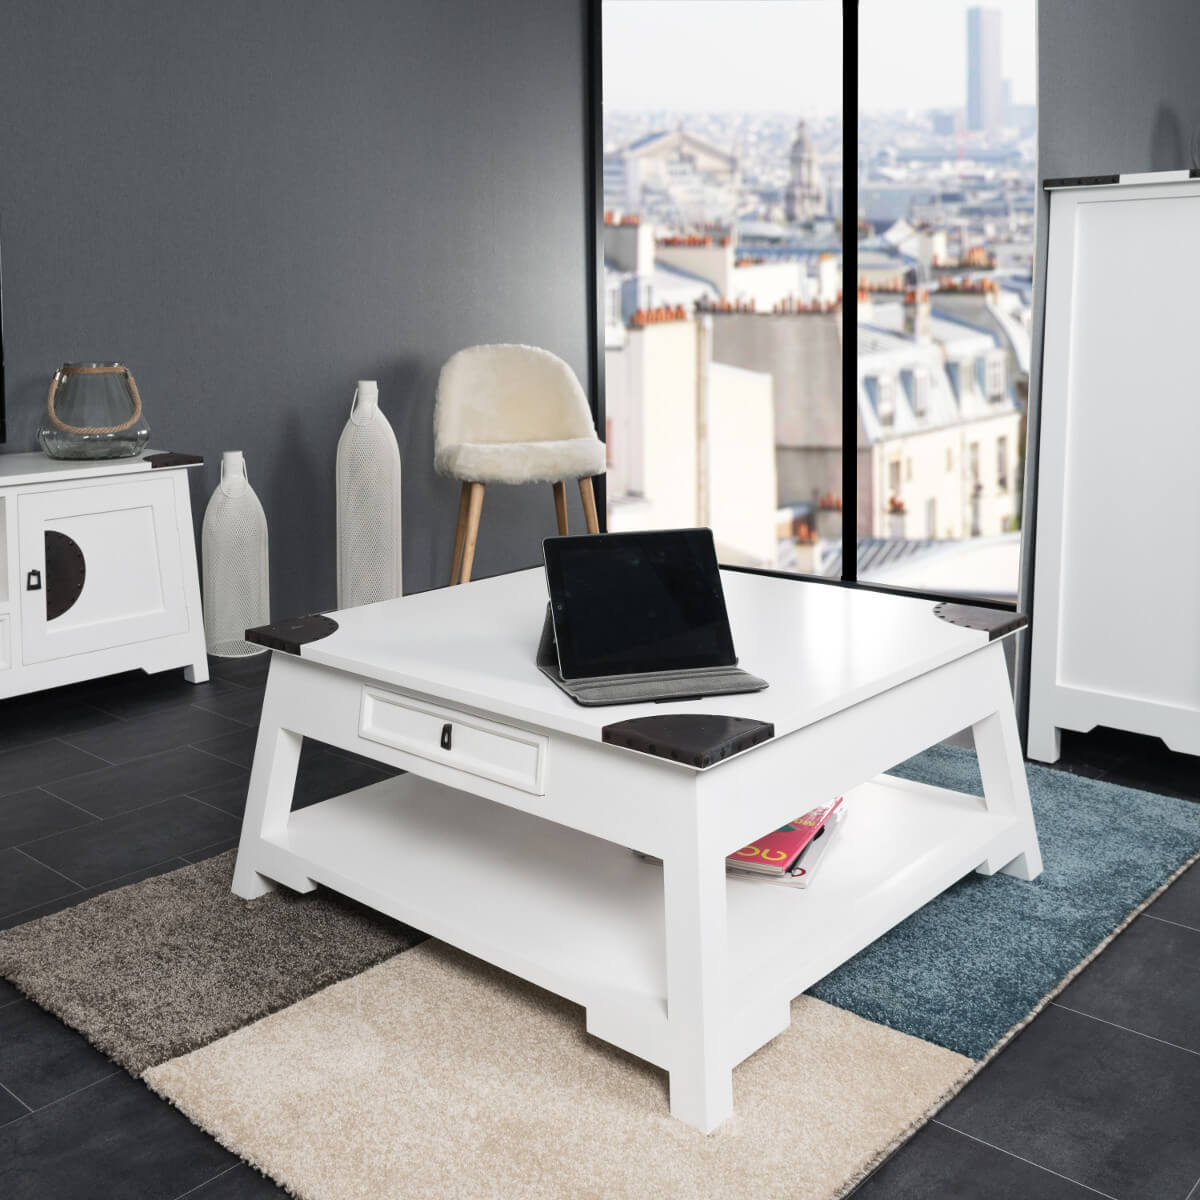 Table basse acajou bois massif carr e blanche thao 85 cm - Table basse de salon ...